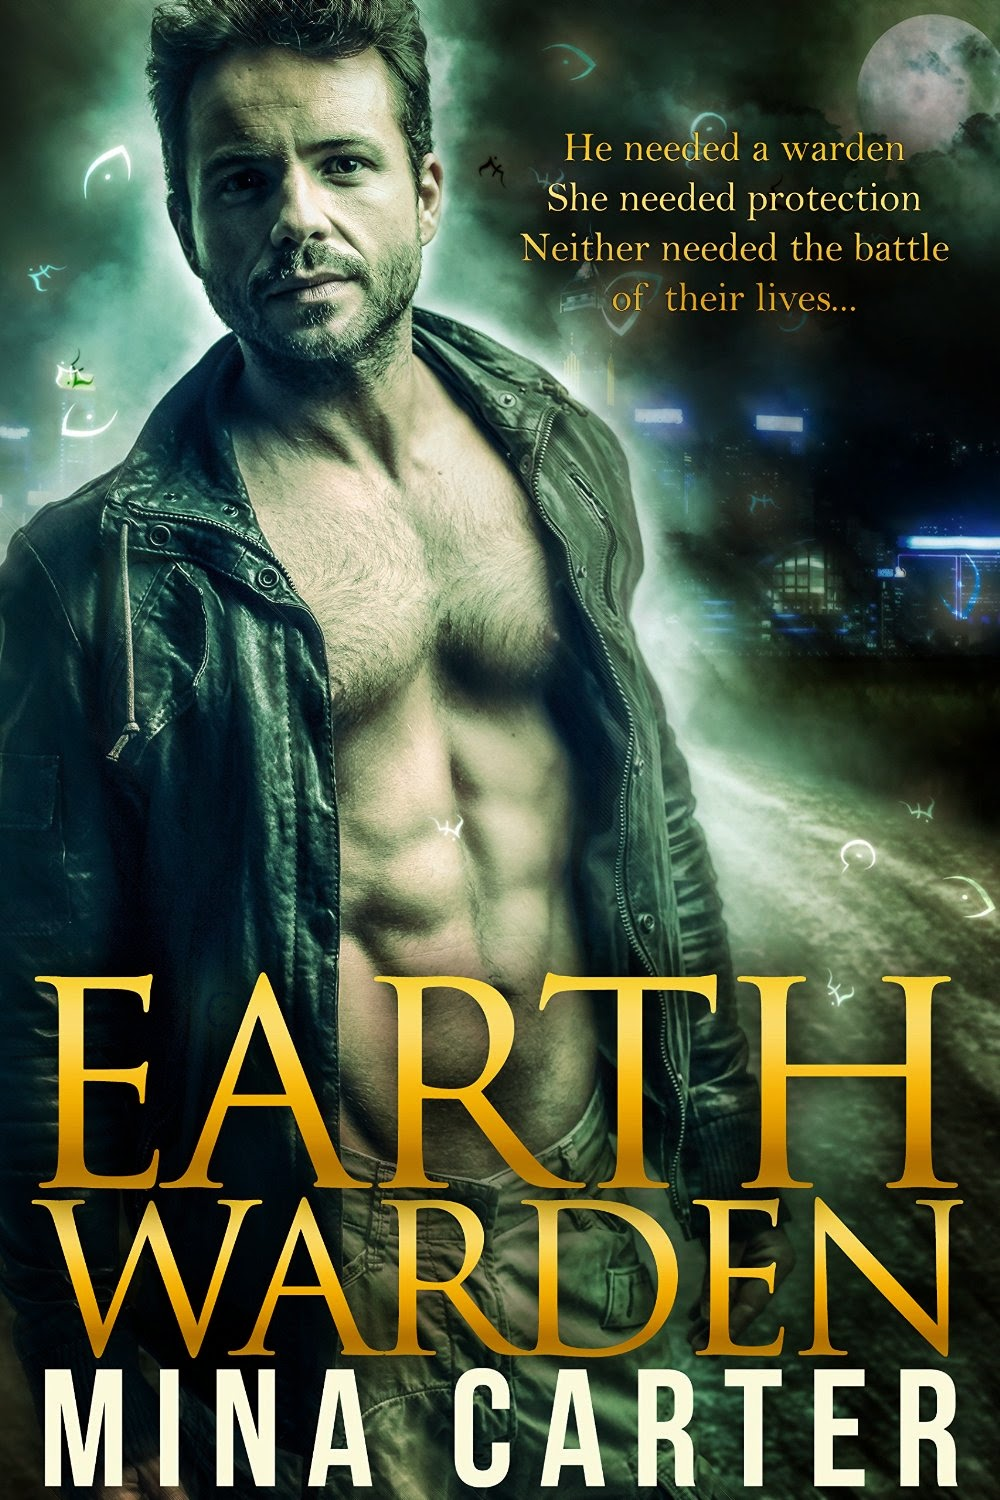 Earth Warden by Mina Carter